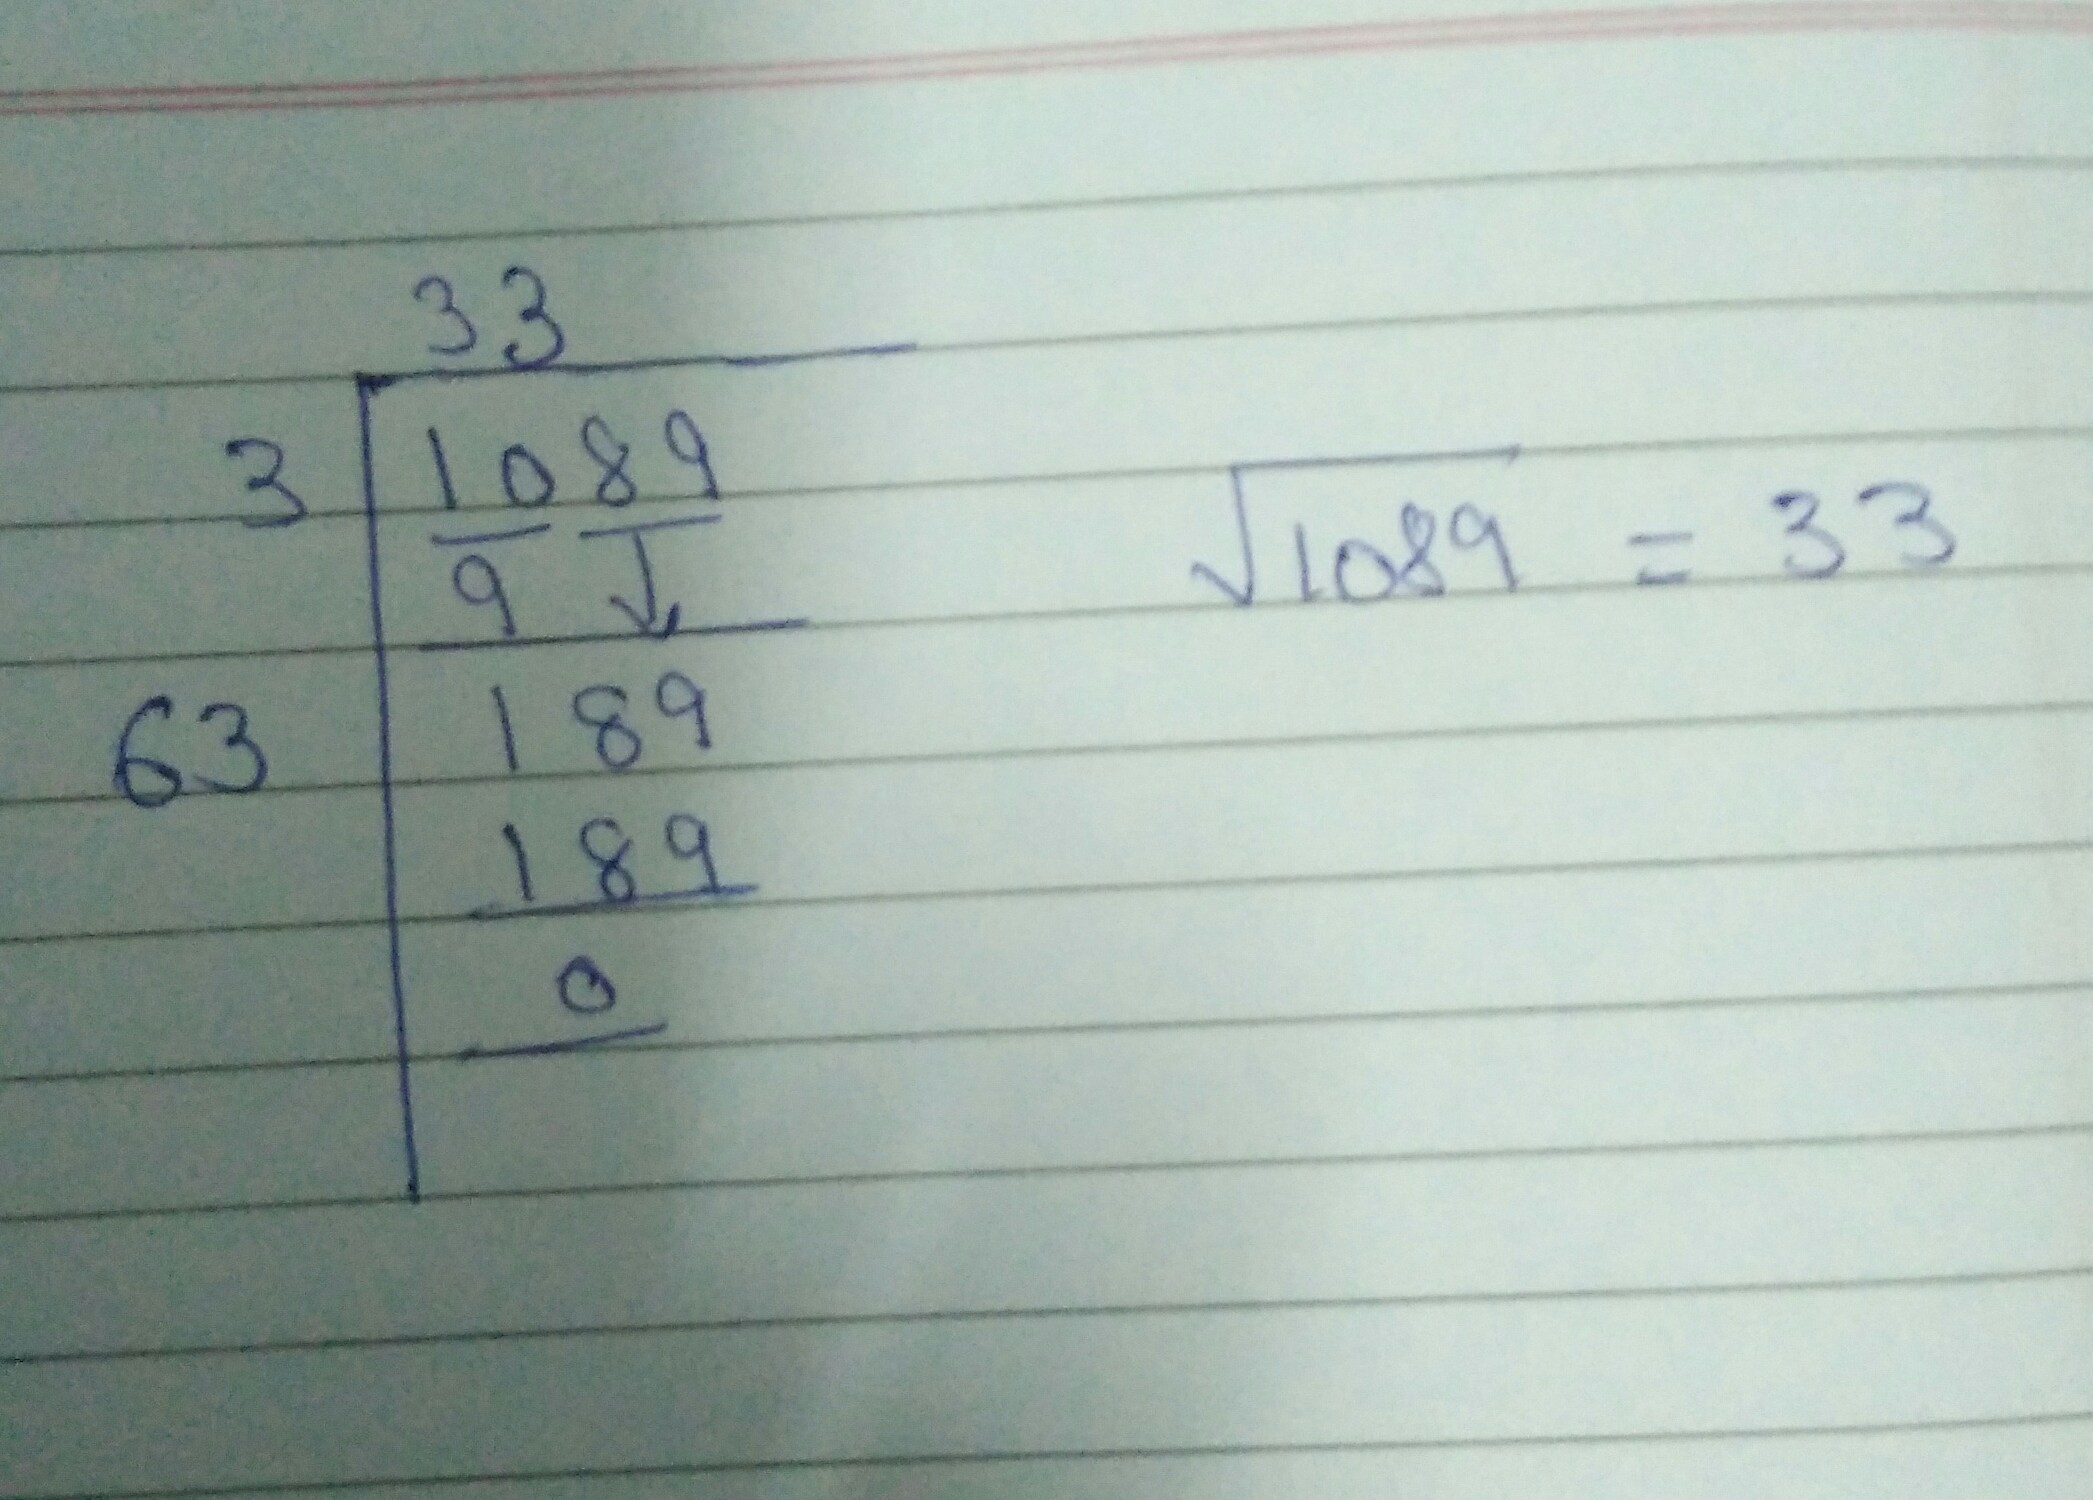 Square Root Of 1089 By Division Method Brainly In